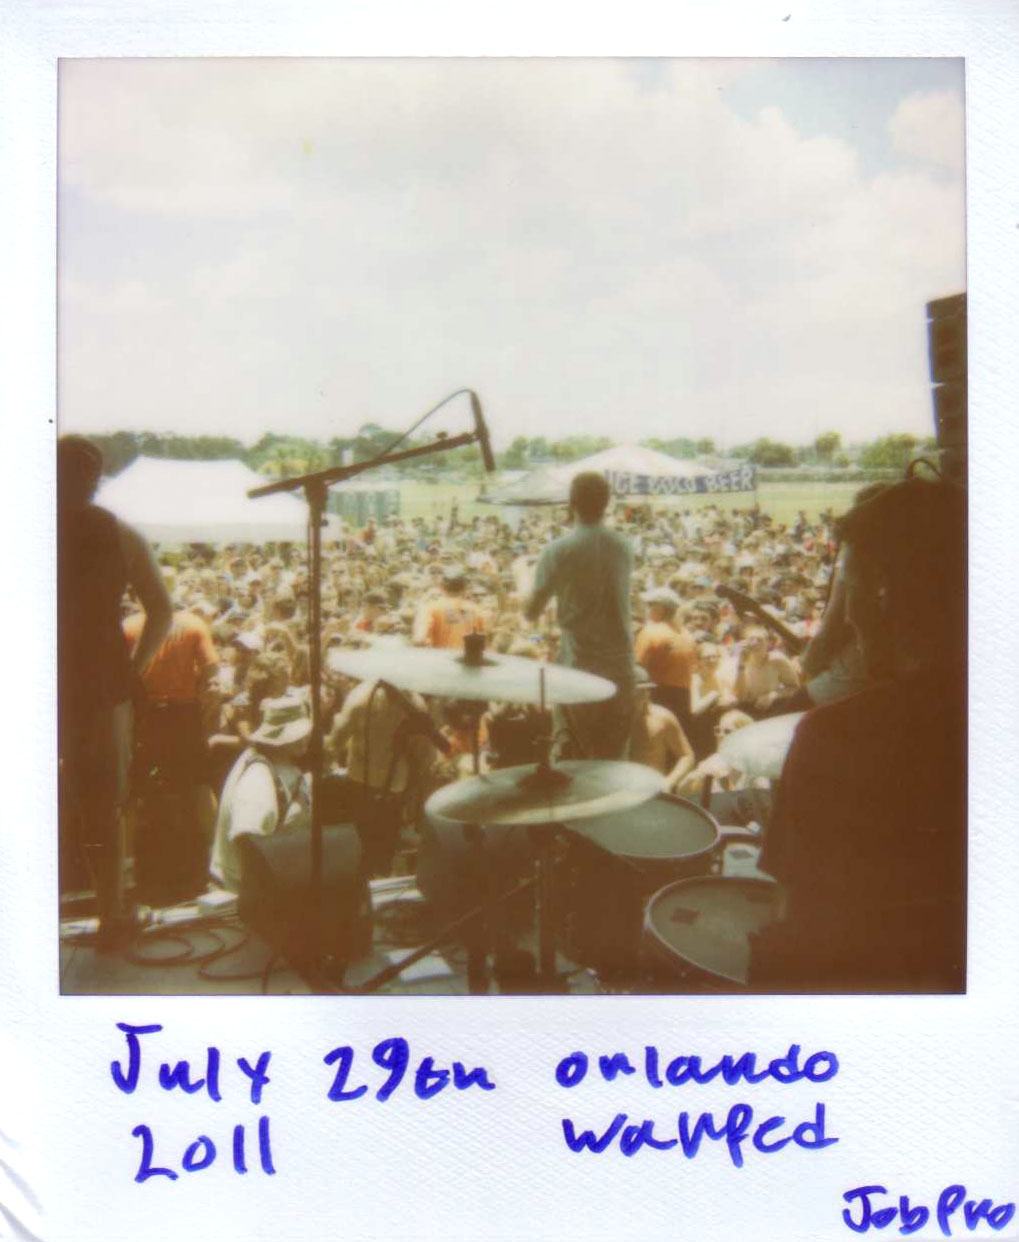 Orlando warped tour